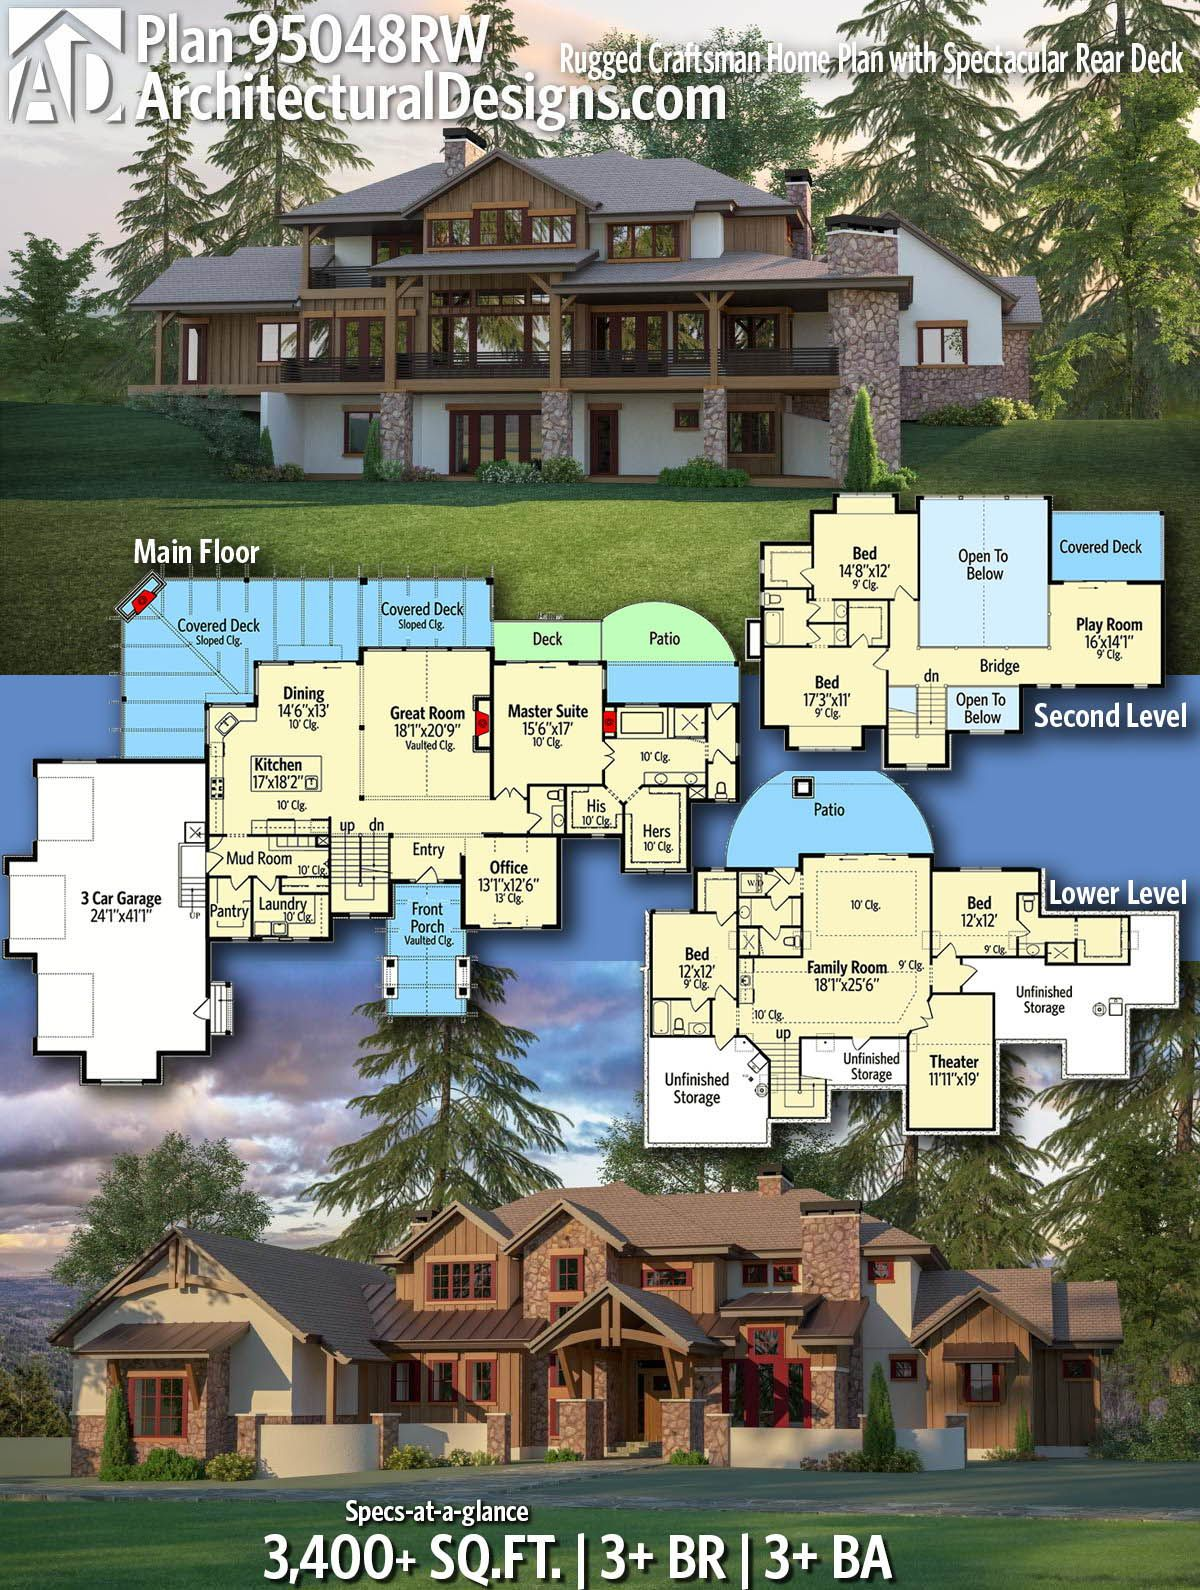 Plan 95048rw Rugged Craftsman Home Plan With Spectacular Rear Deck Craftsman House Plans Rustic House Plans Craftsman House